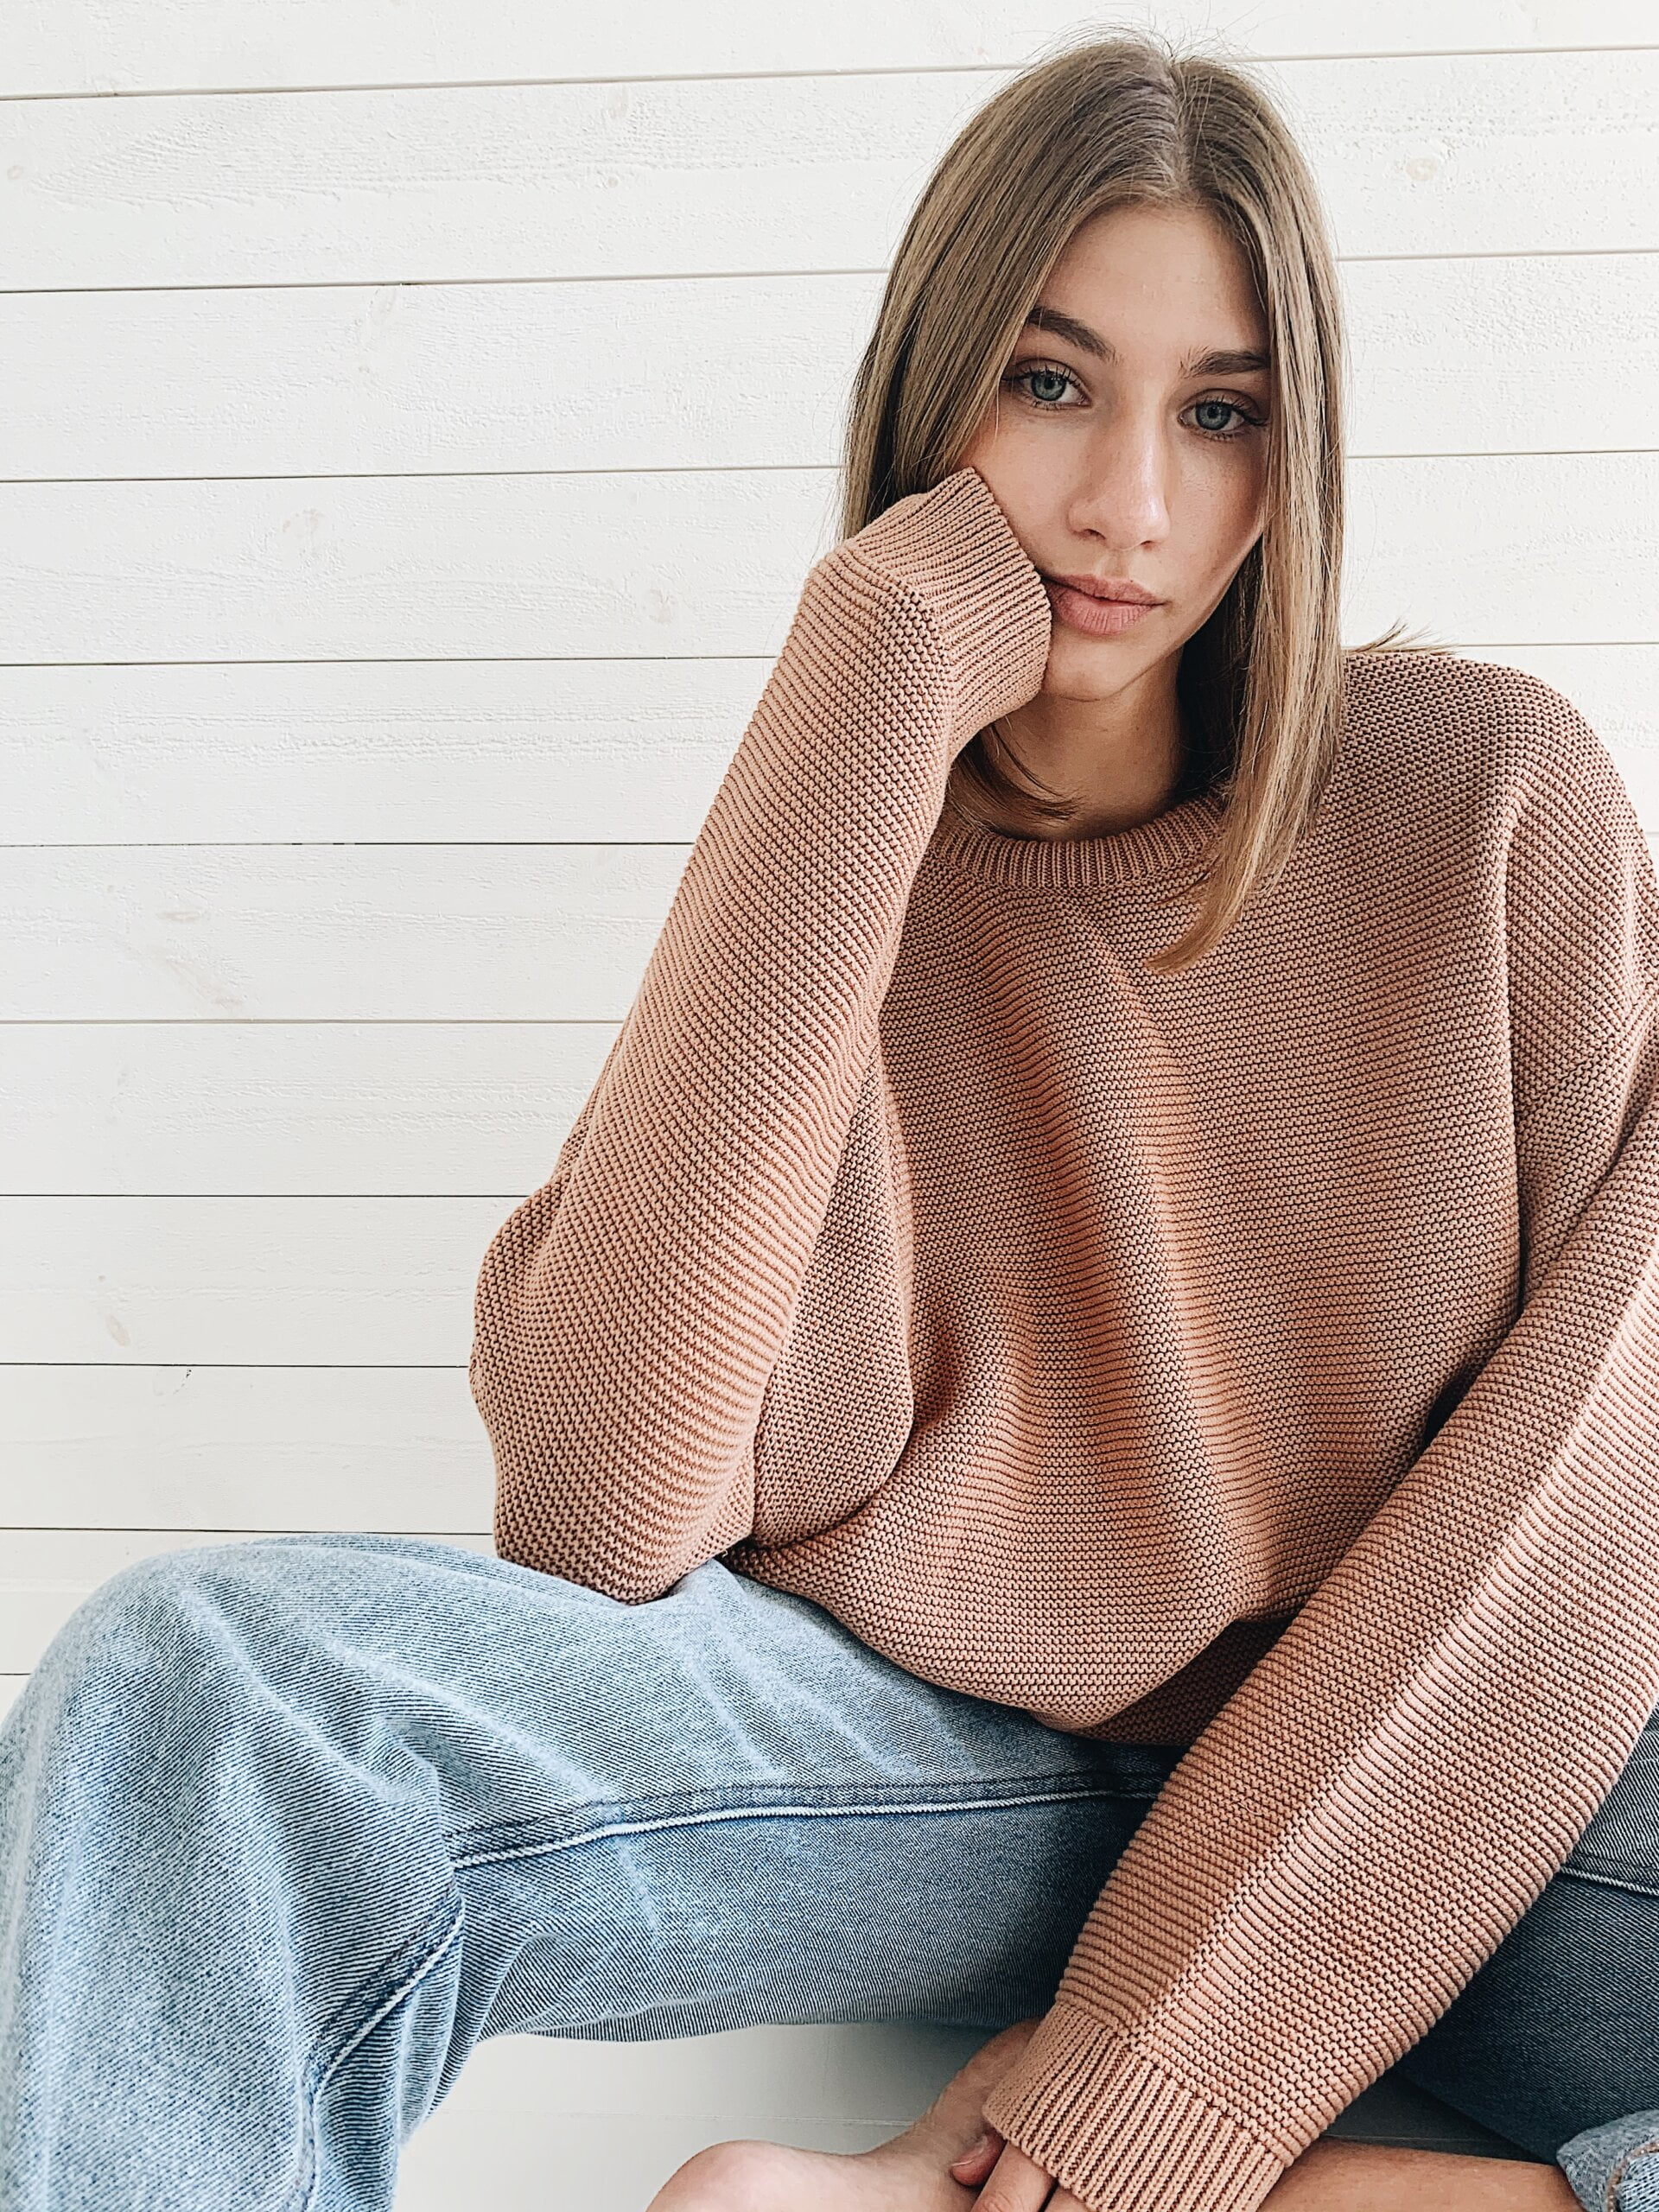 Mist knitted sweater